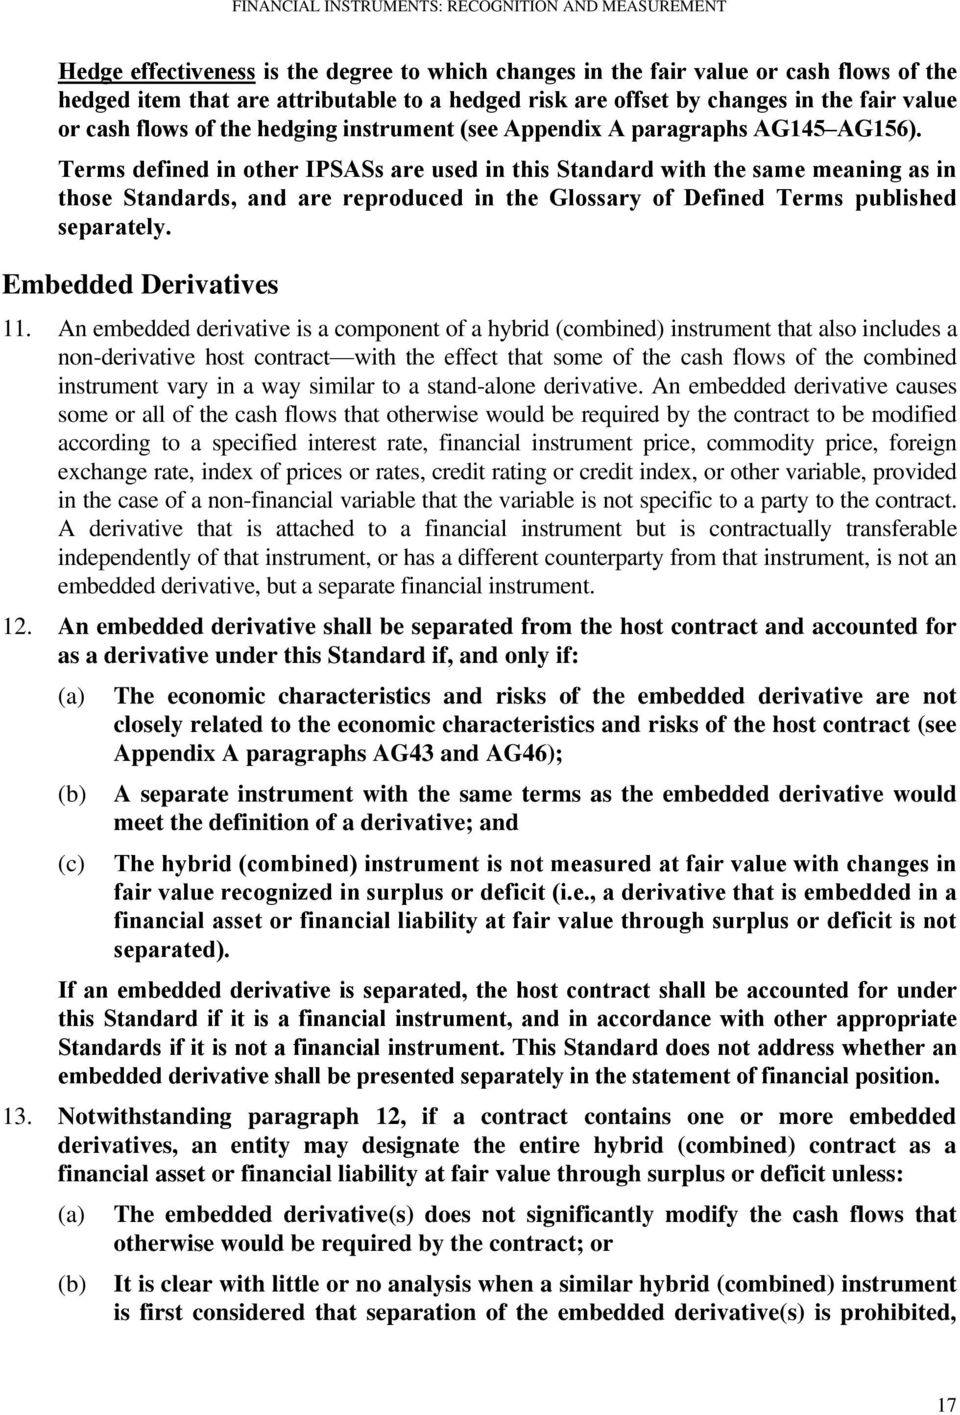 Terms defined in other IPSASs are used in this Standard with the same meaning as in those Standards, and are reproduced in the Glossary of Defined Terms published separately. Embedded Derivatives 11.